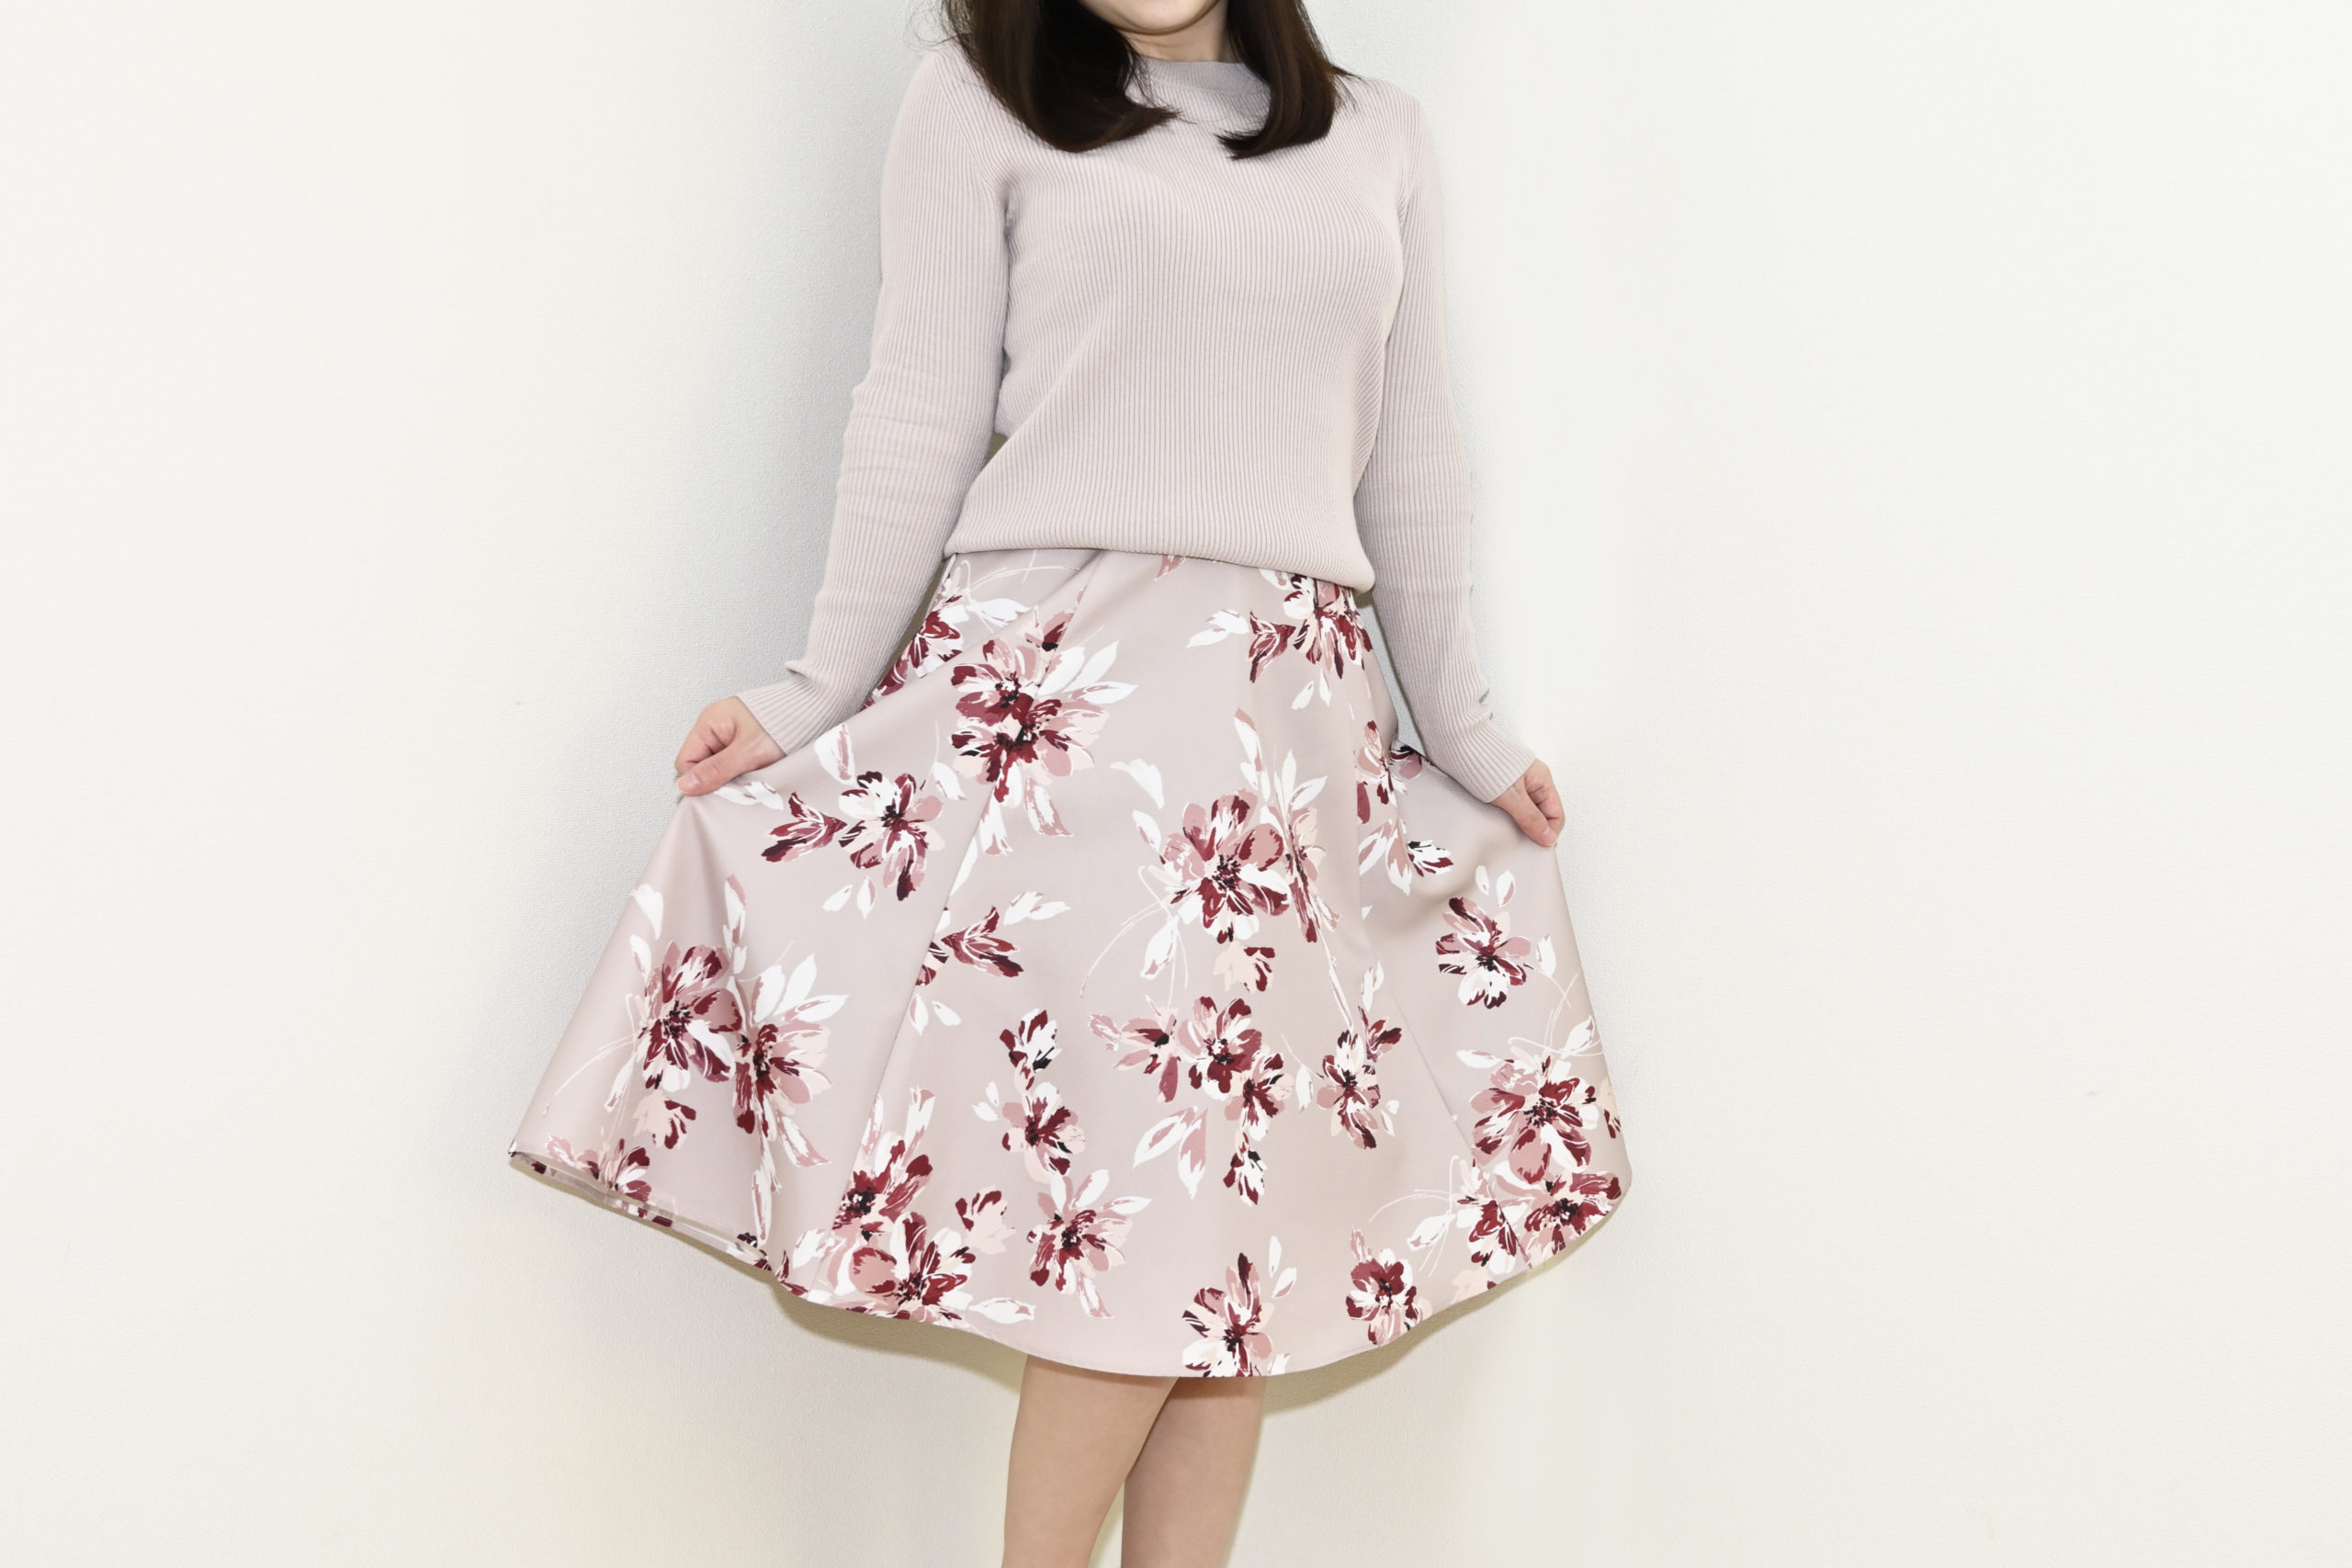 Women,In,Knitted,Shirts,And,Floral,Skirts